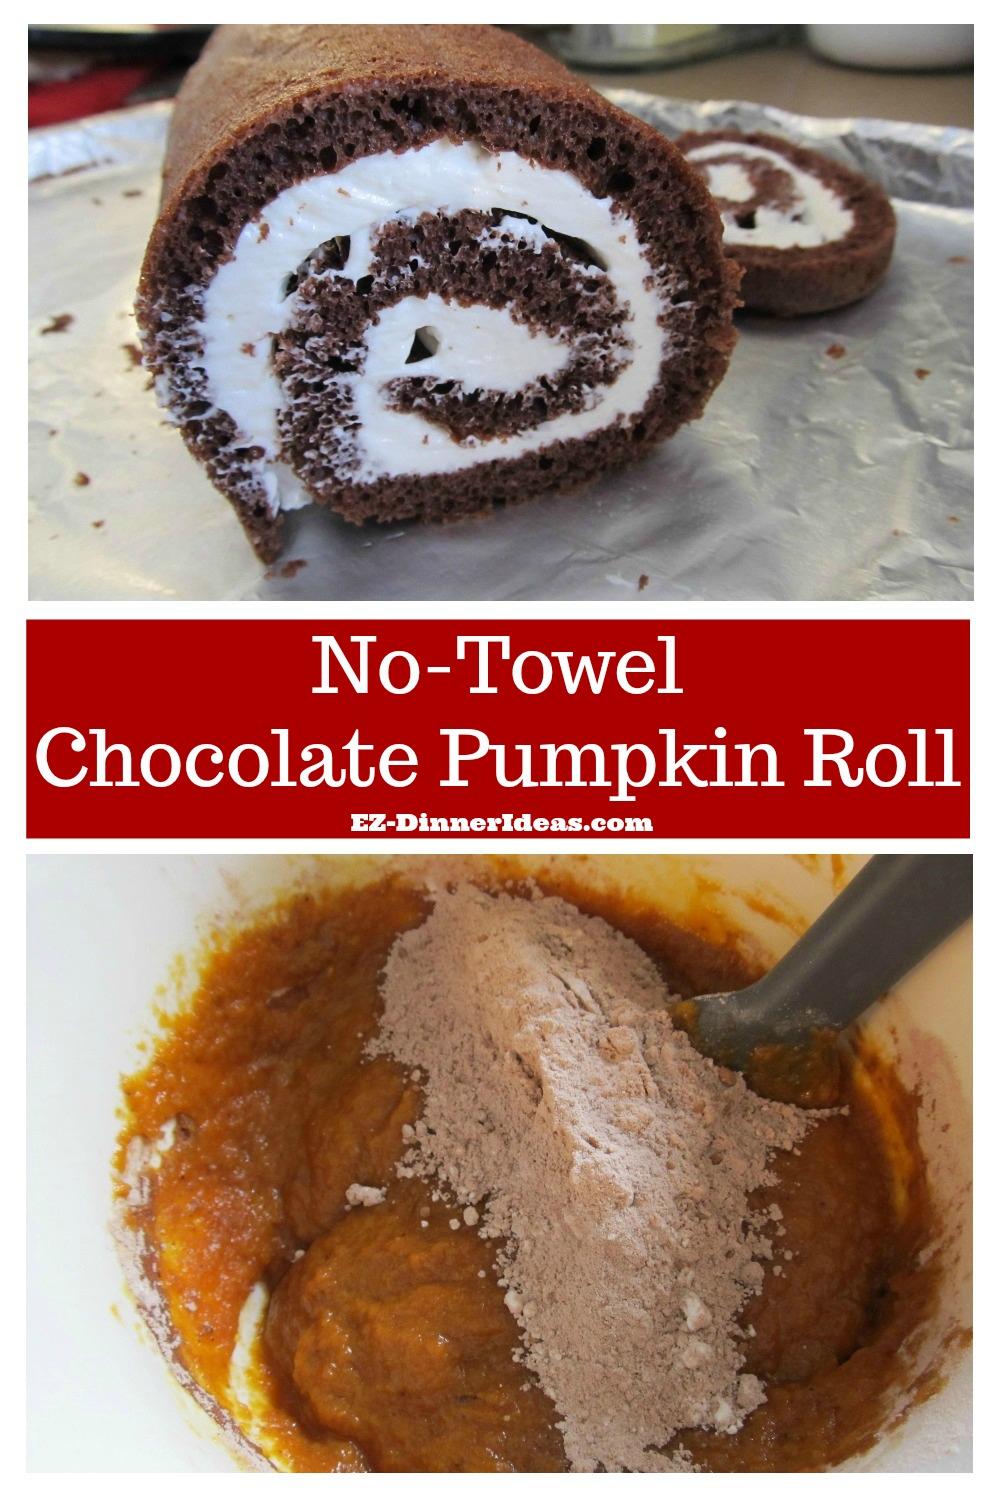 Chocolate Cake Roll | No-Towel Chocolate Pumpkin Roll